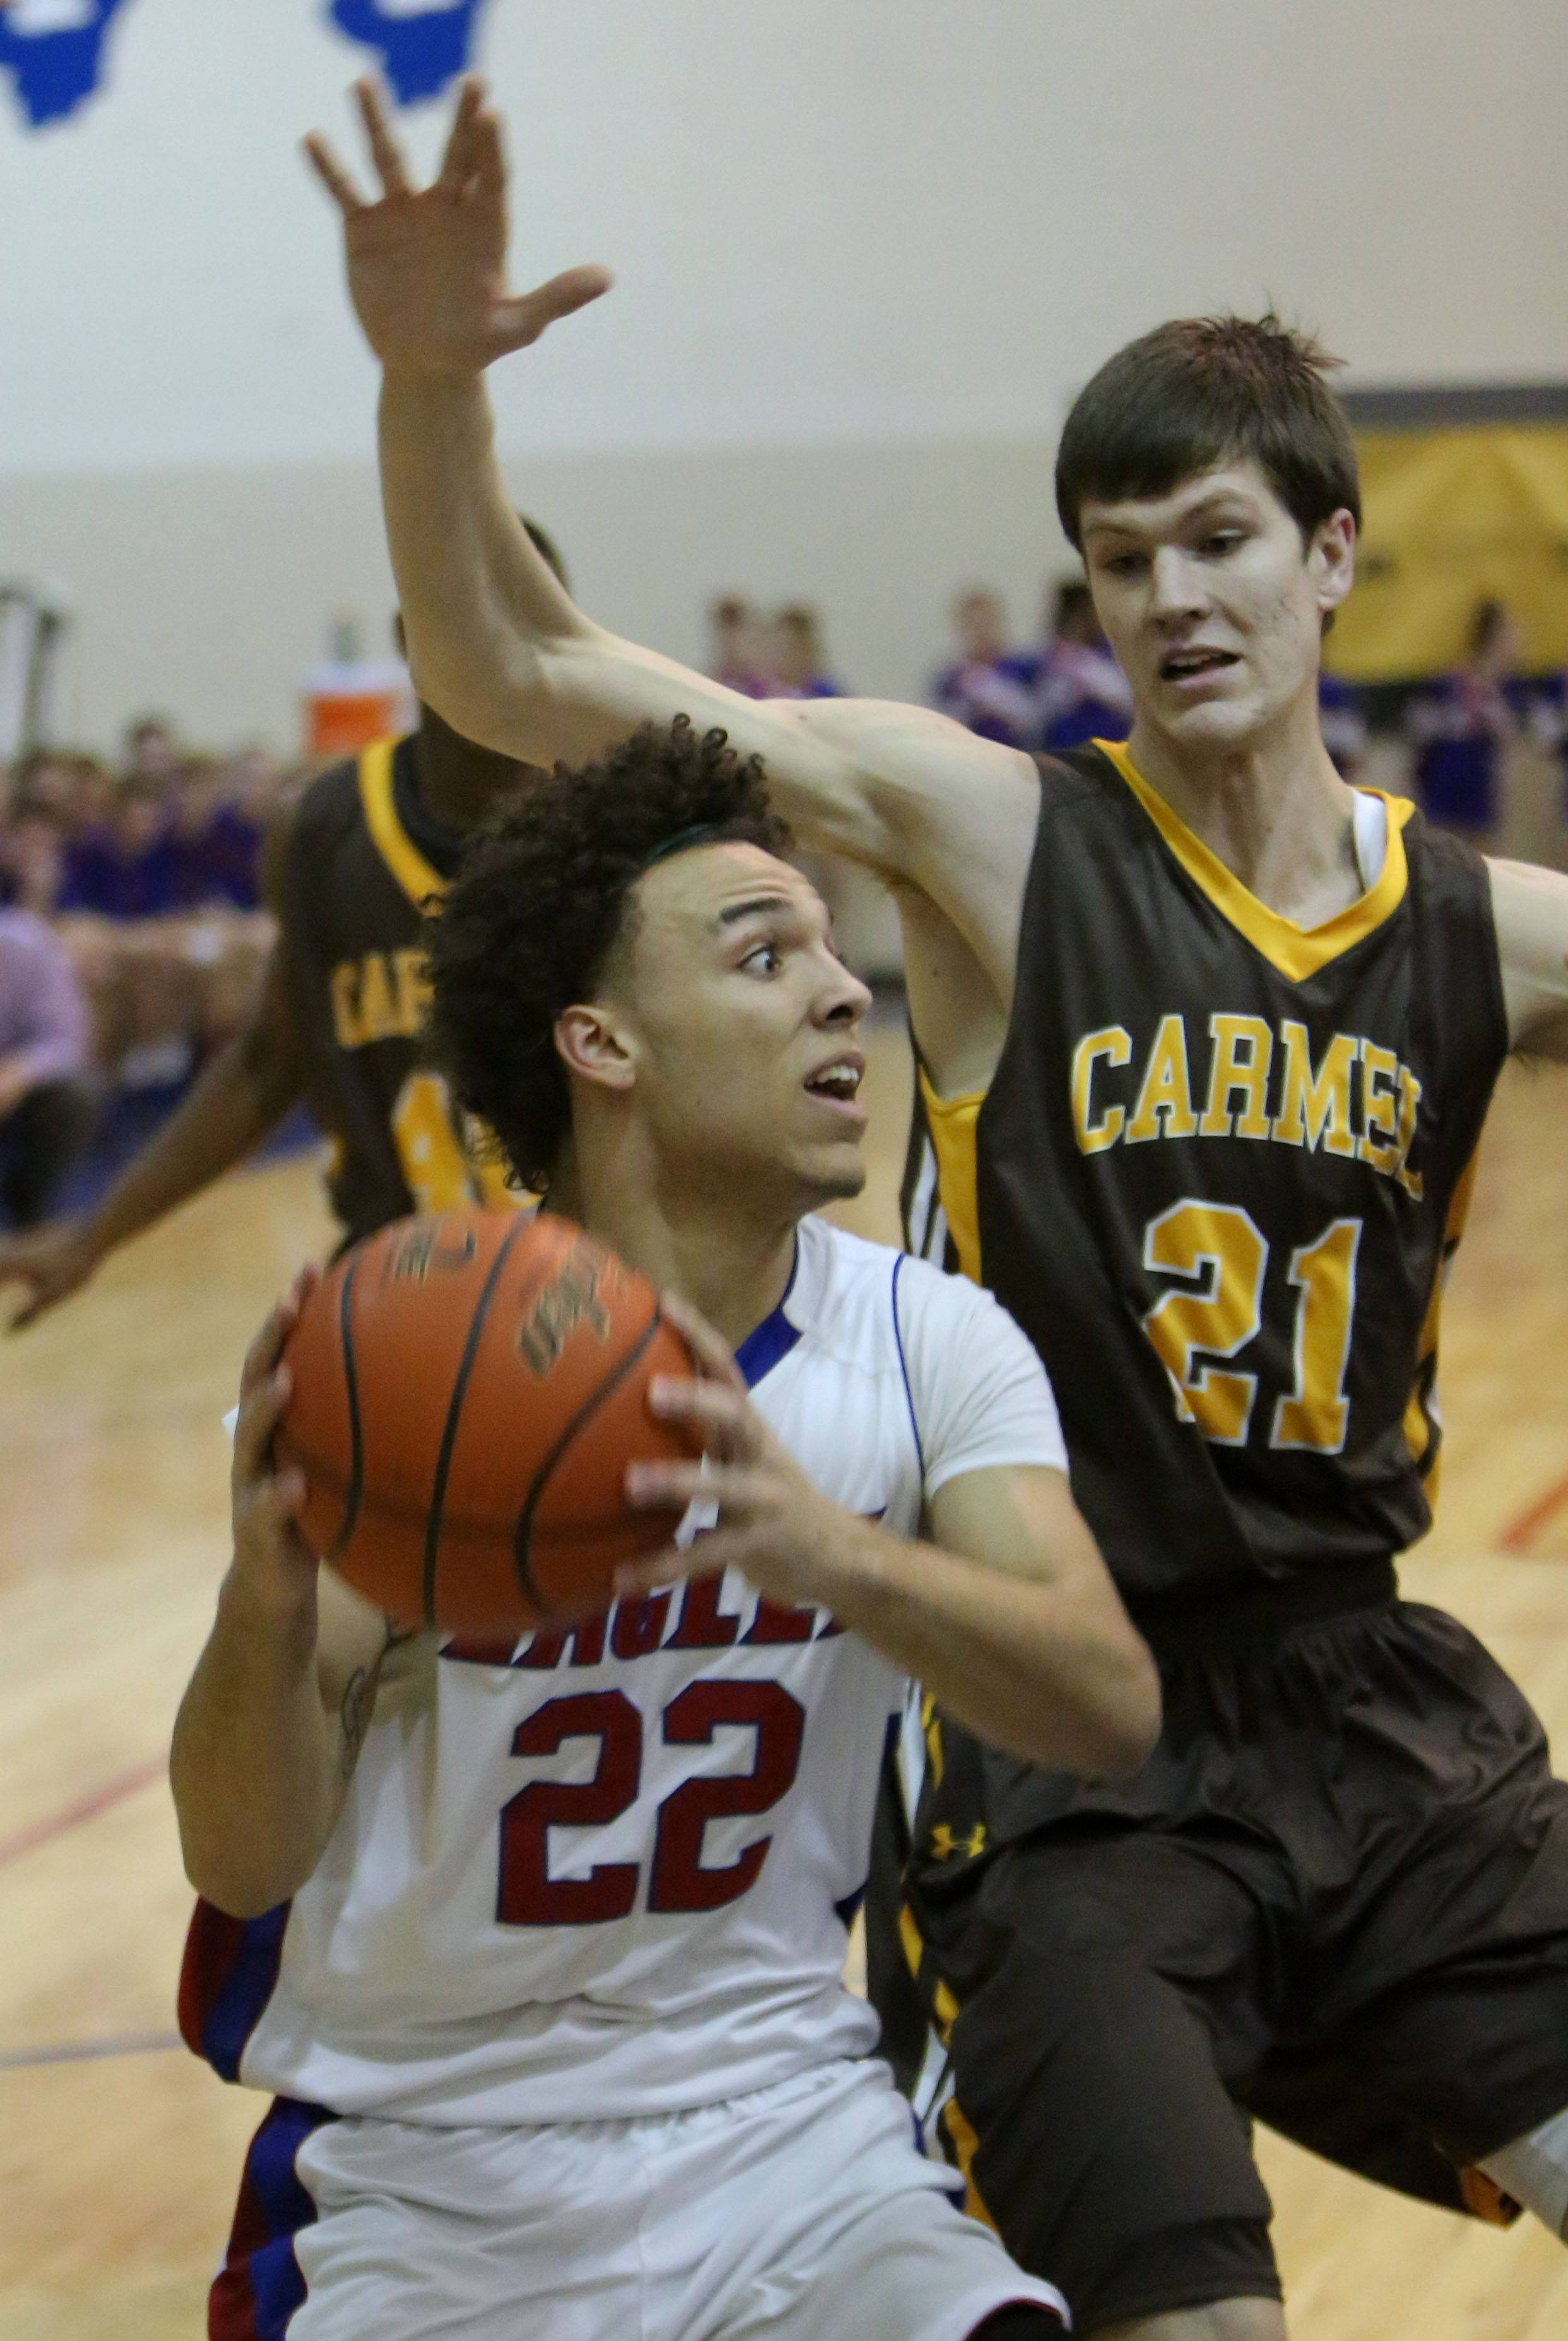 Lakes' Carmel's Tramone Hudson, left, drives to the hoop on Carmel's Jack George.